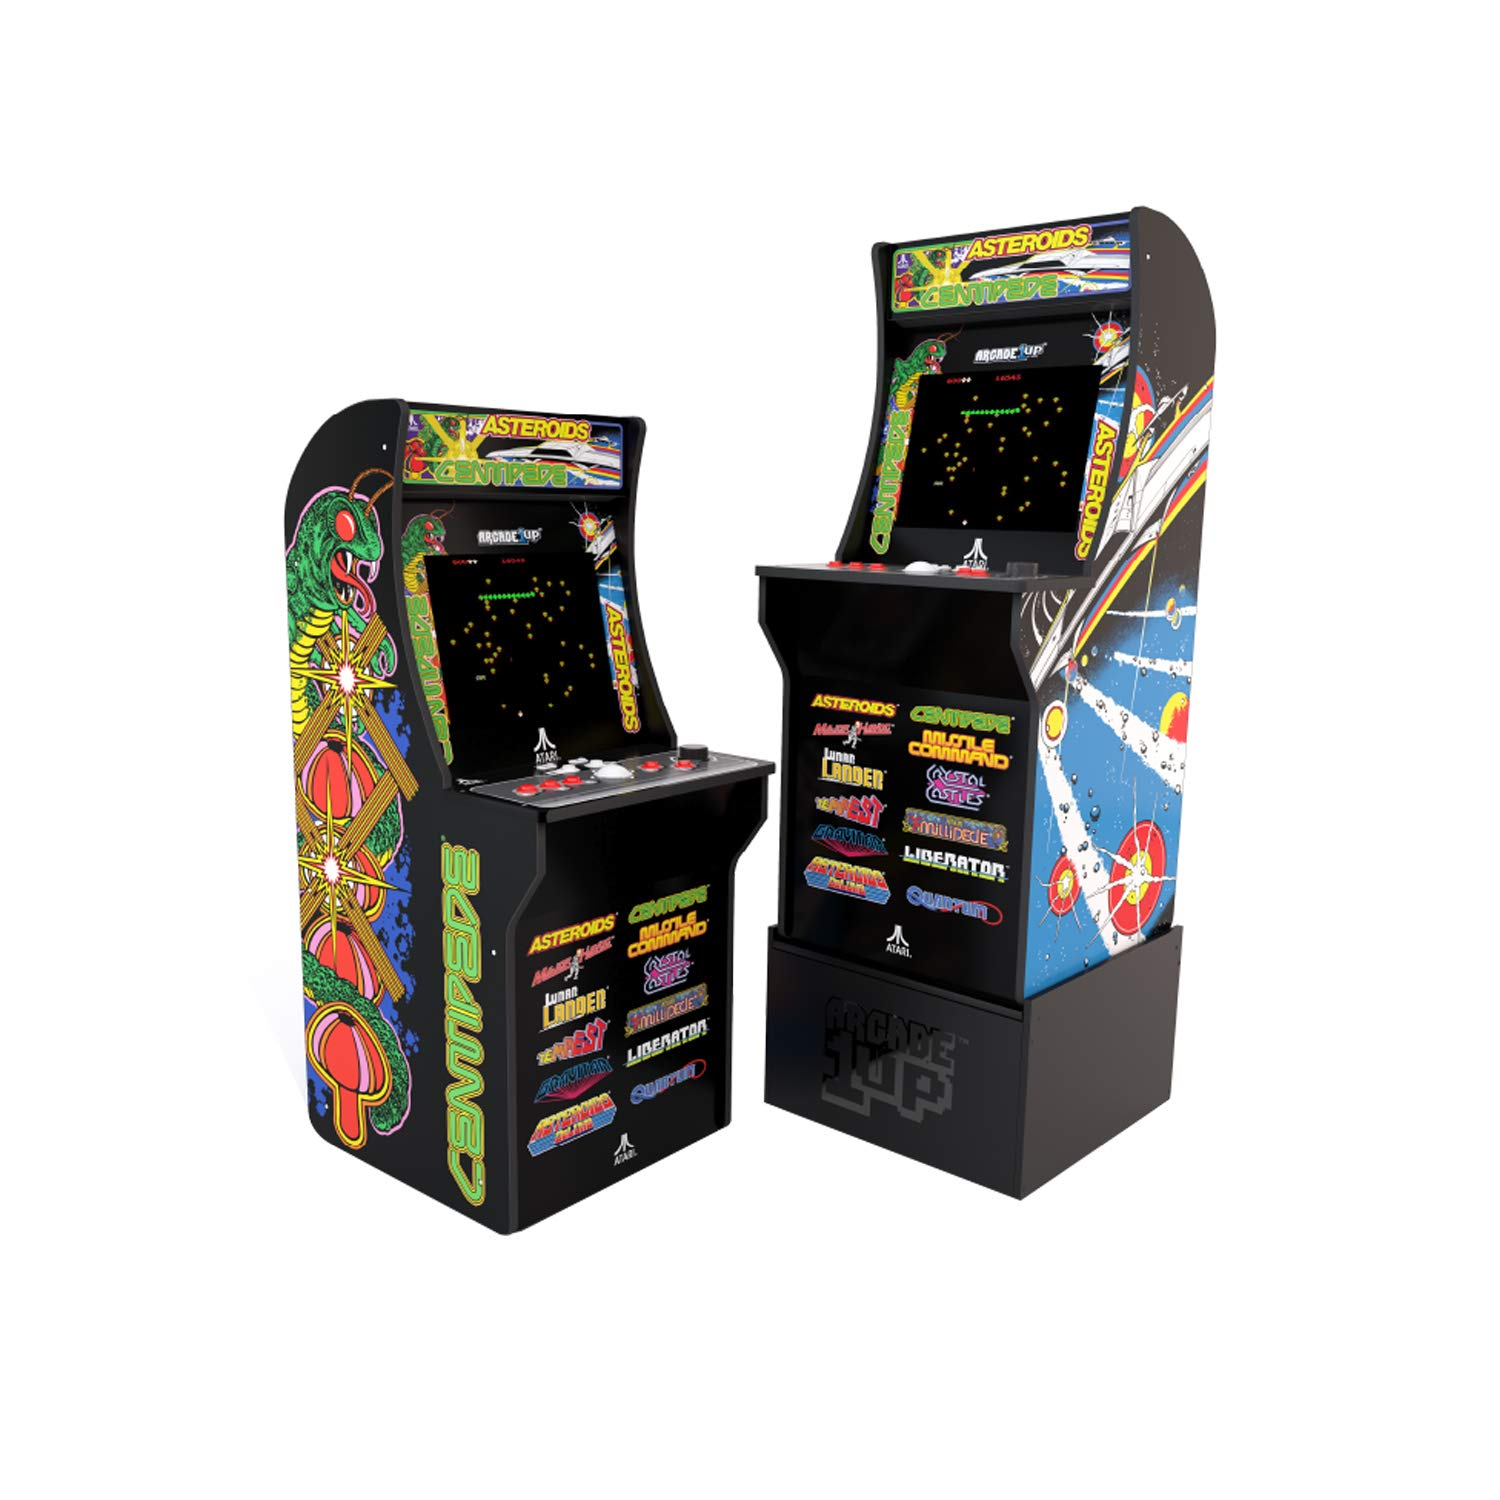 Arcade1Up Deluxe Edition 12-in-1 Arcade Cabinet with Riser, 5 feet by Arcade1Up (Image #1)